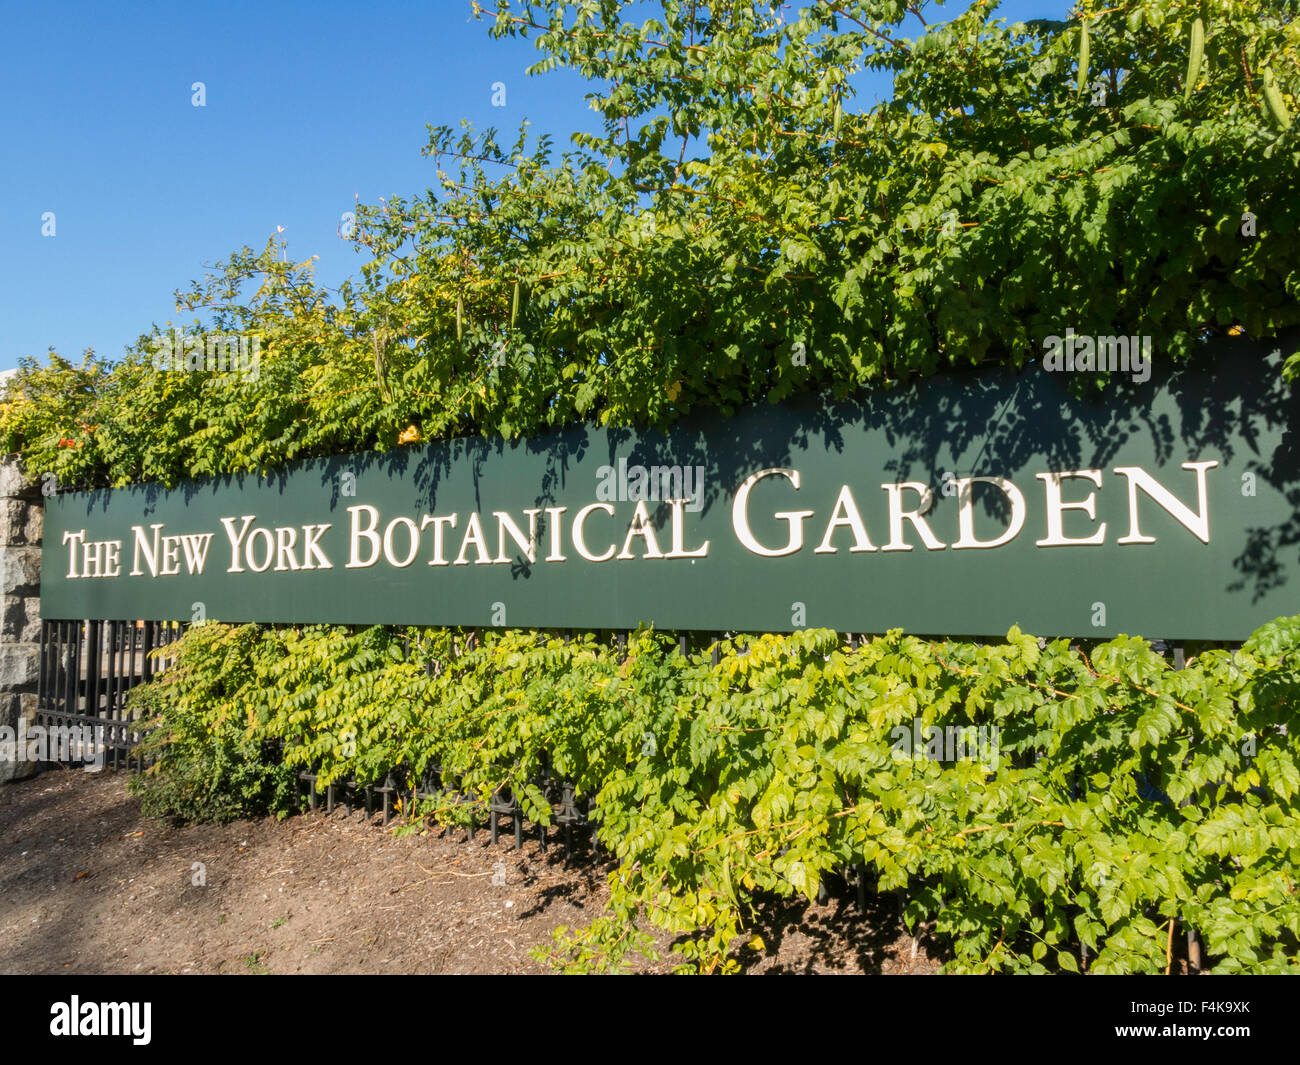 New York Botanical Garden Entrance Sign, The Bronx, NY, USA